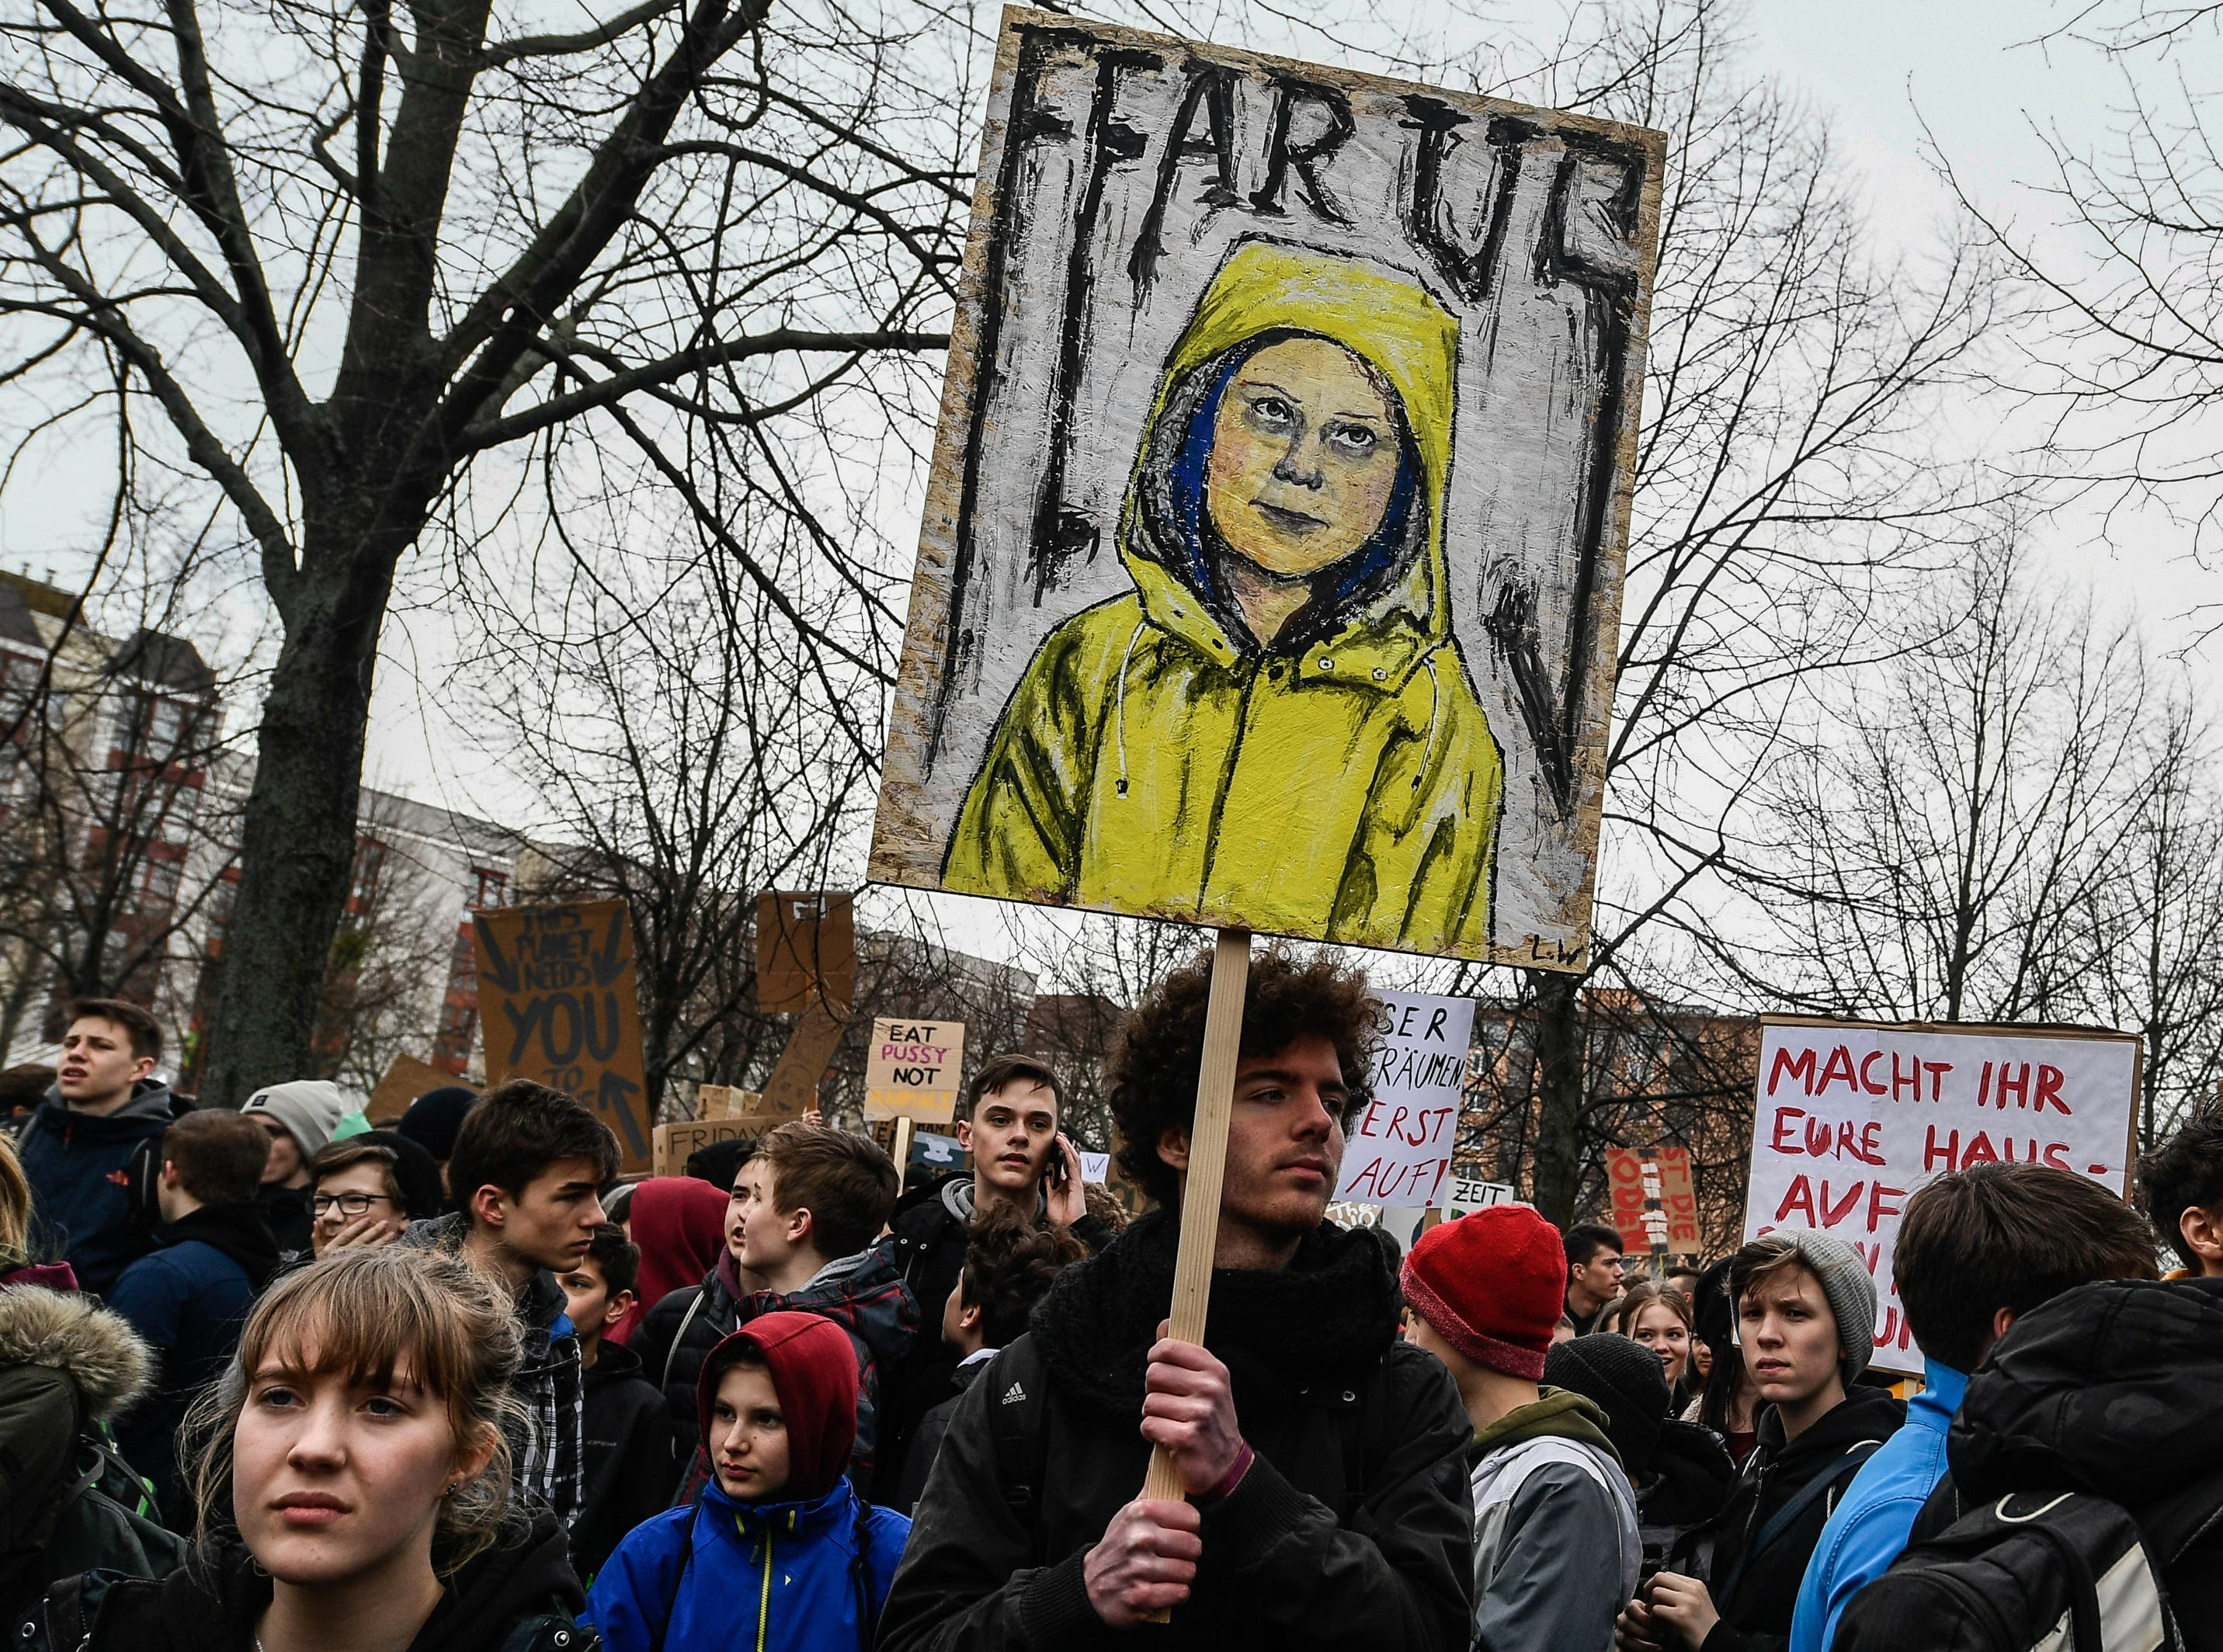 Students takes part in a demonstration against climate change, in Dresden, Germany on March 15, 2019.